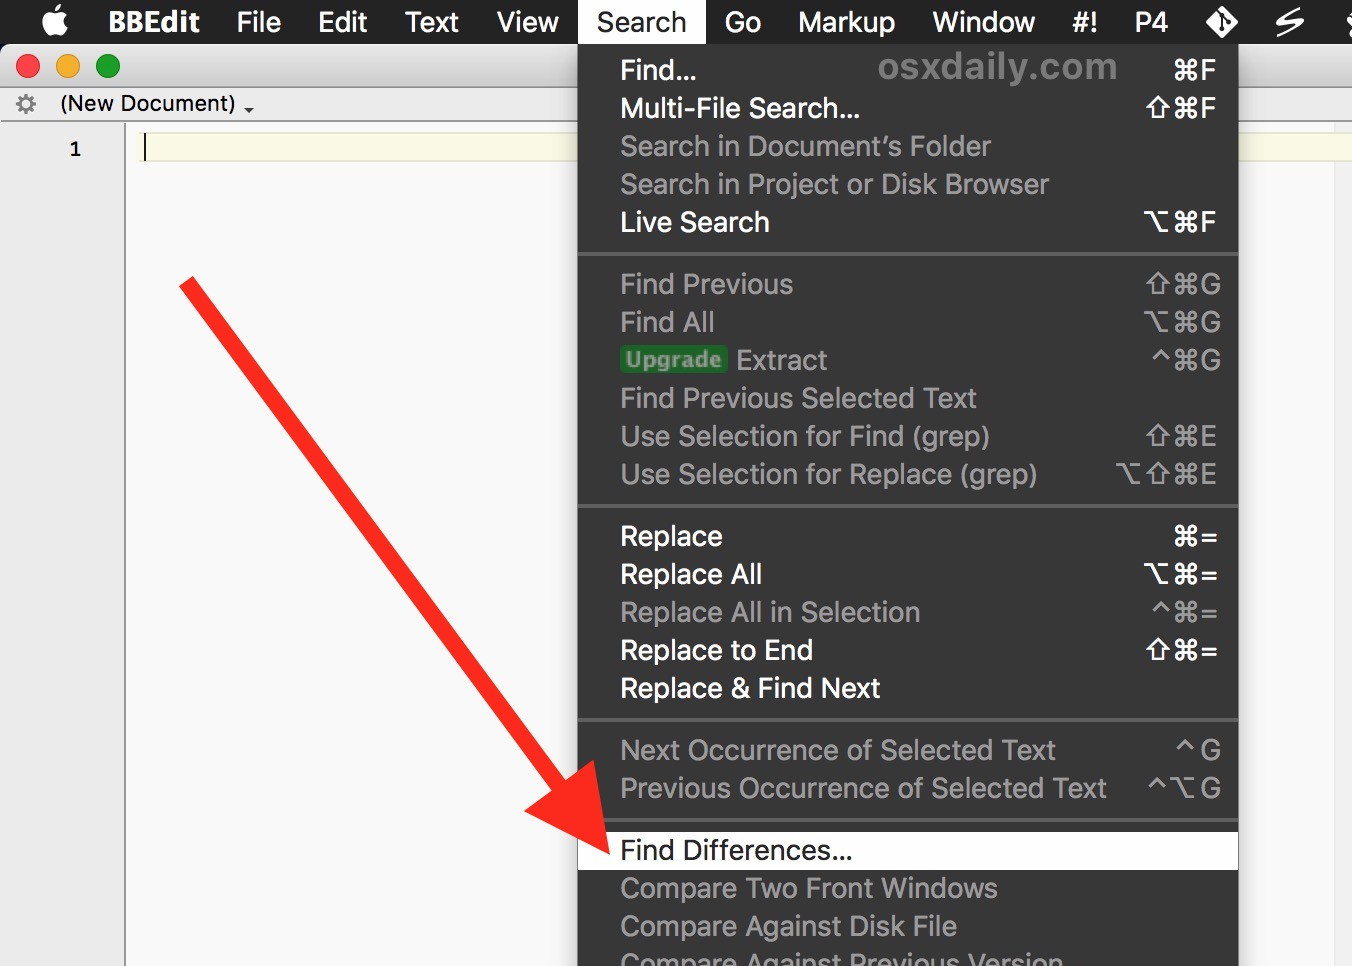 Find differences with BBEdit for Mac